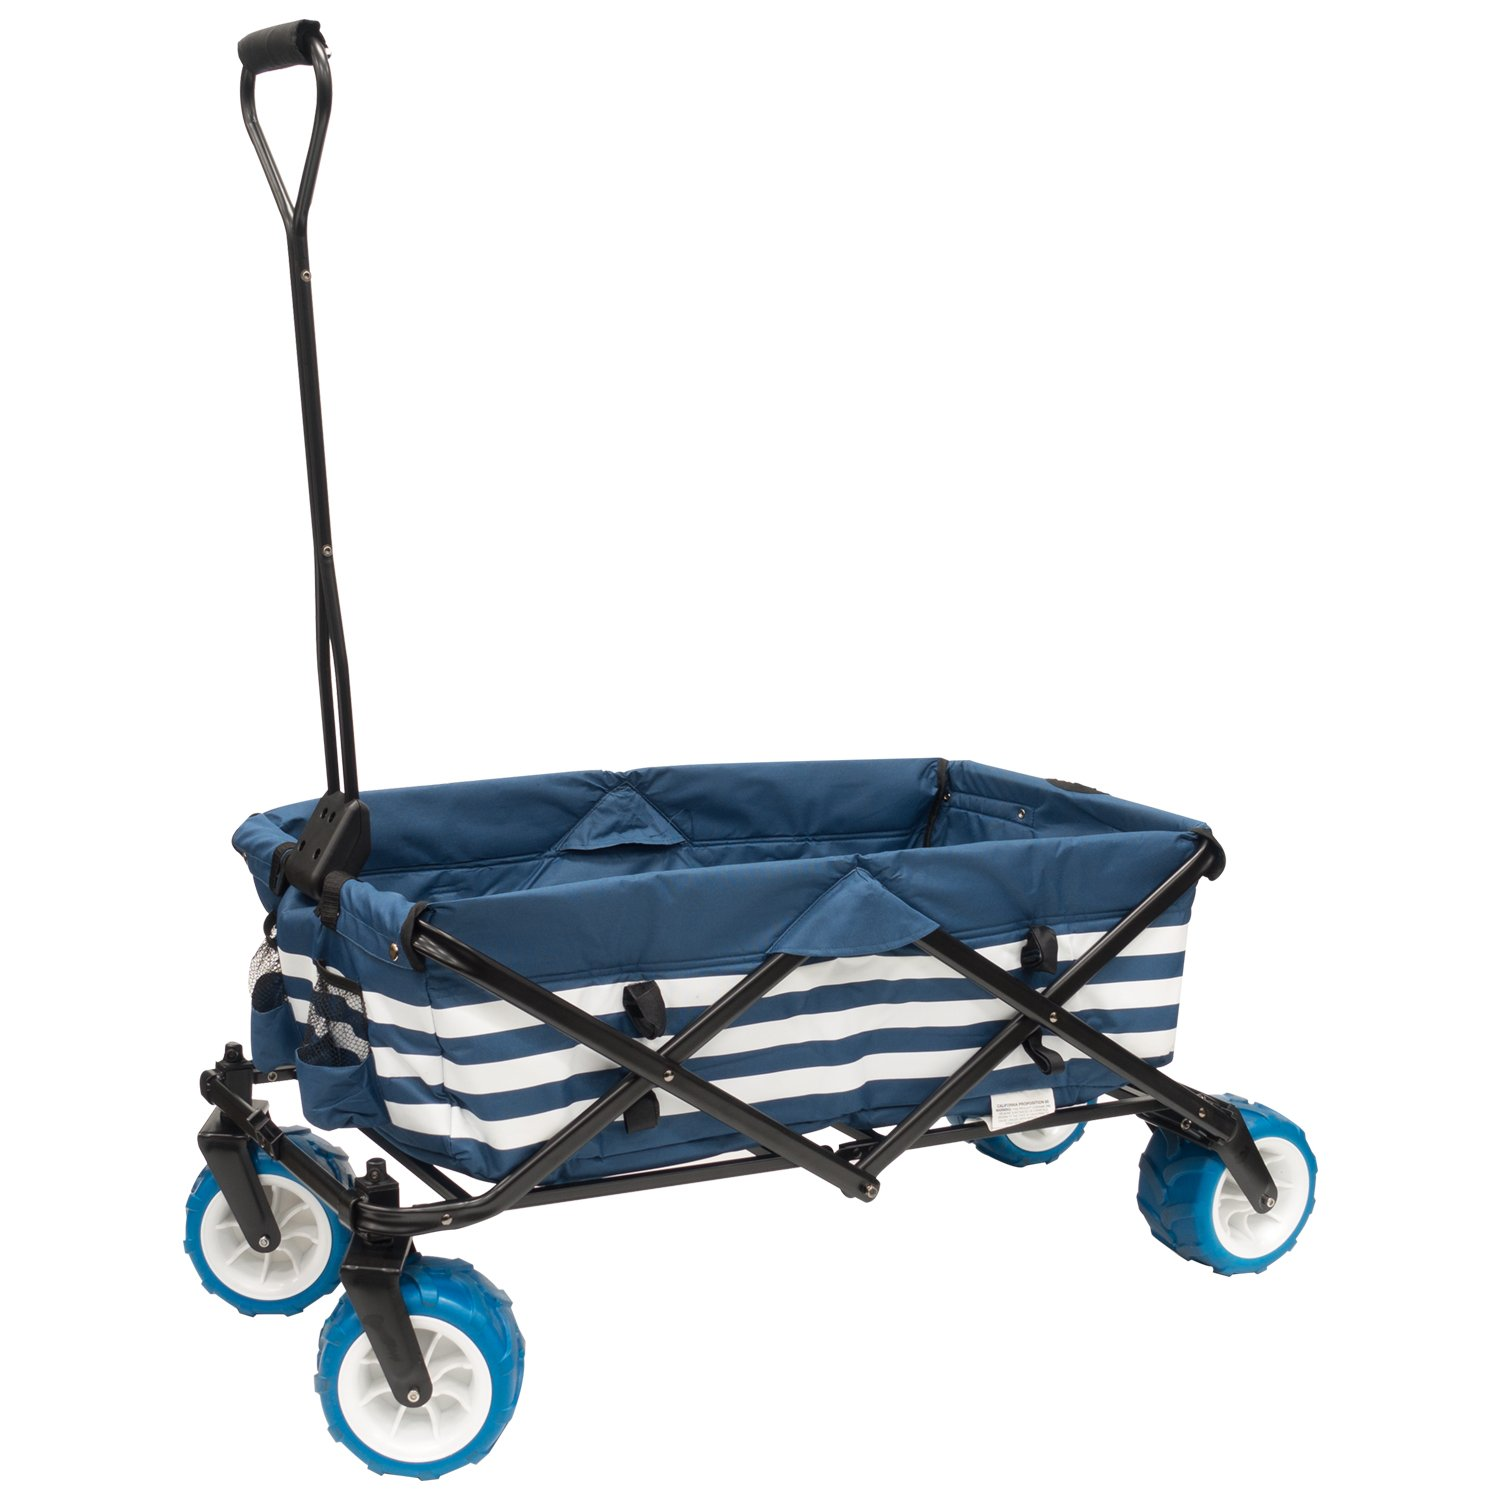 Amazon.com   Creative Outdoor Collapsible Folding Wagon Cart for ... d1754c5f3f75